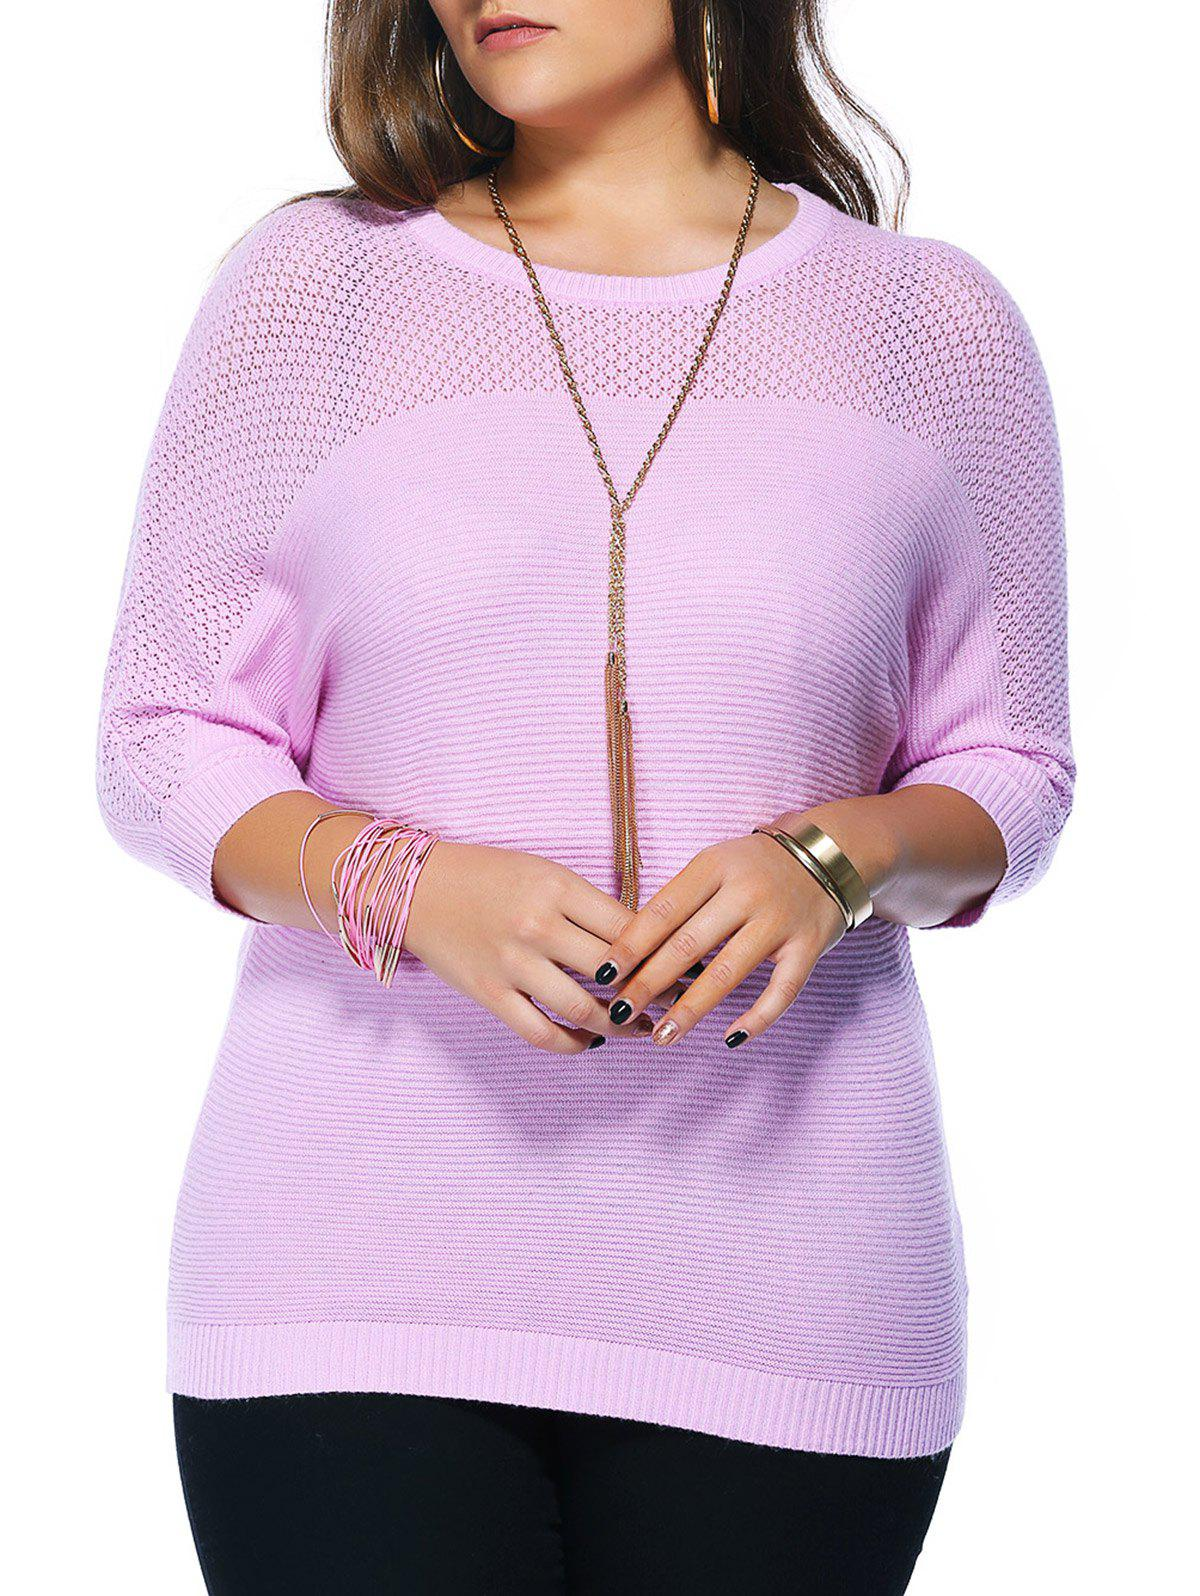 Chic Plus Size Hollow Out Knitted Batwing Sleeve Women's Blouse - PINK ONE SIZE(FIT SIZE L TO 3XL)